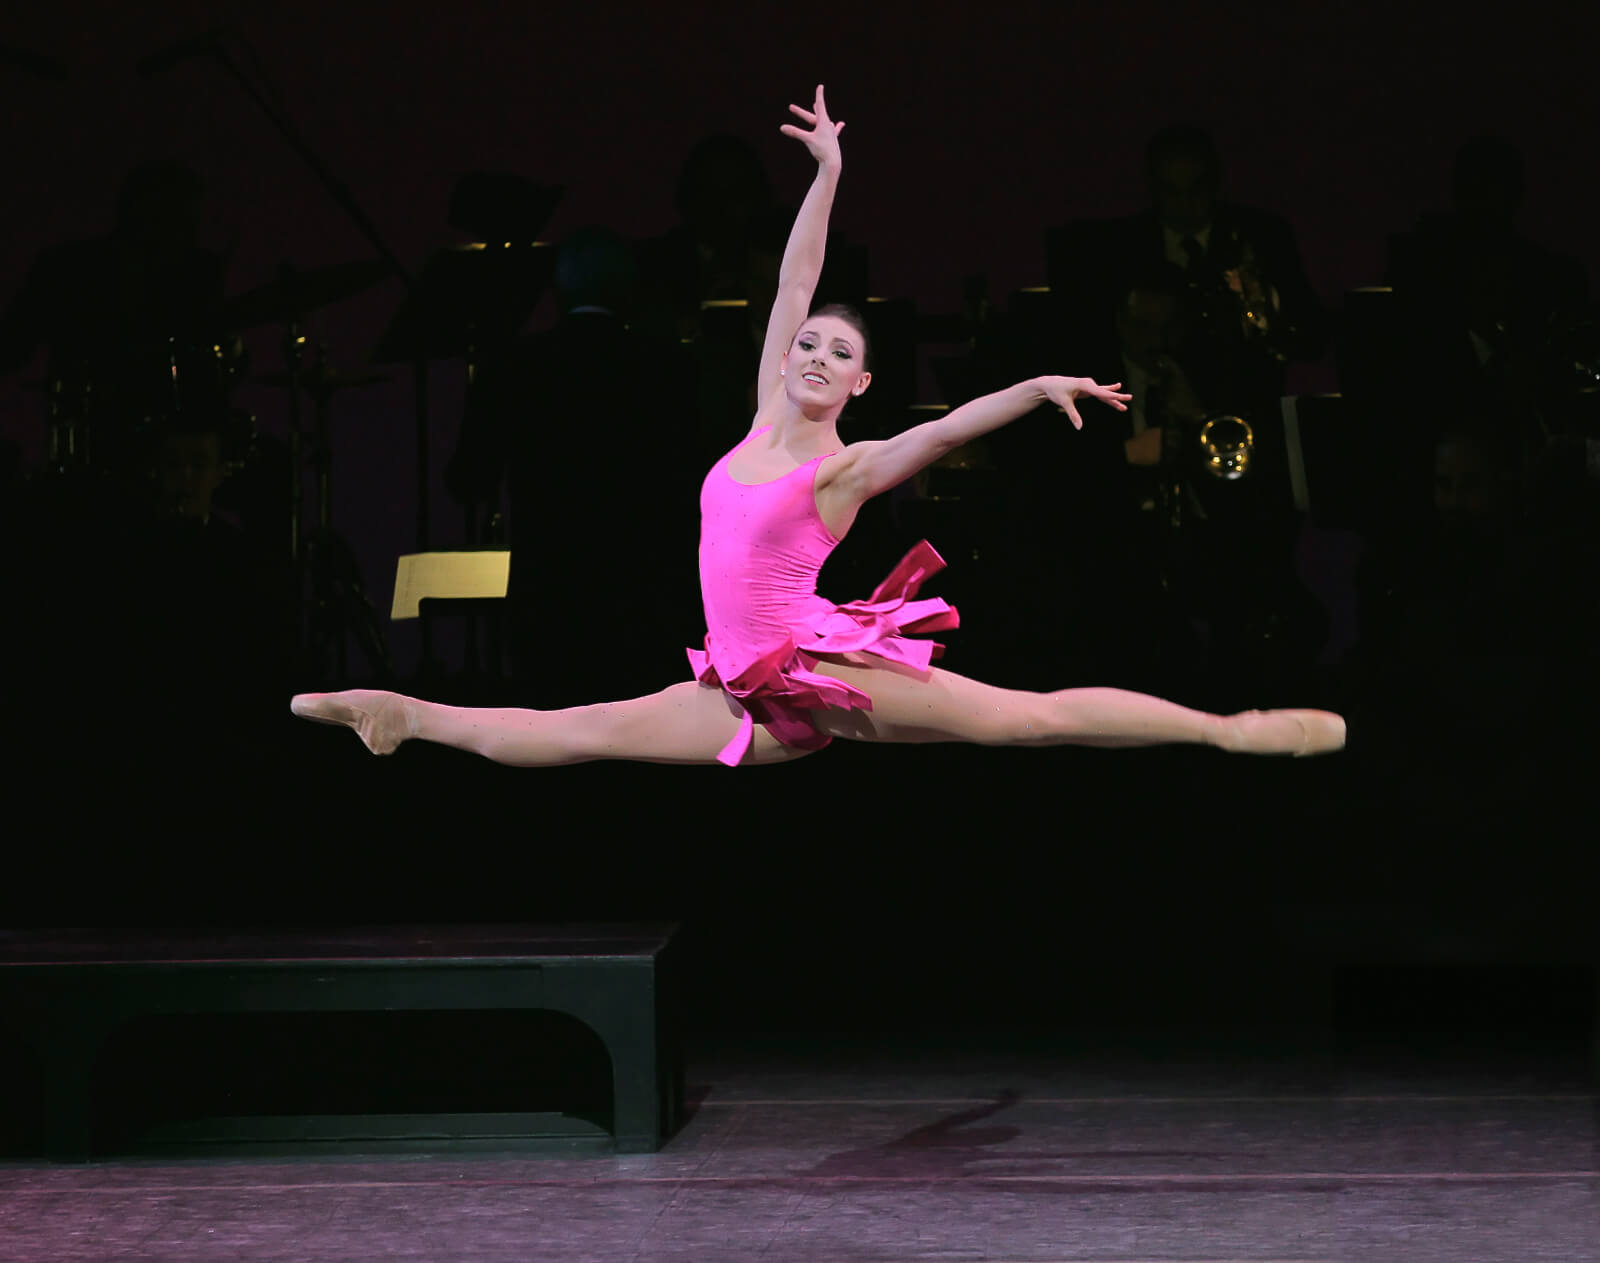 Tiler Peck (dressed in pink) in a grand jeté leaps through the air.